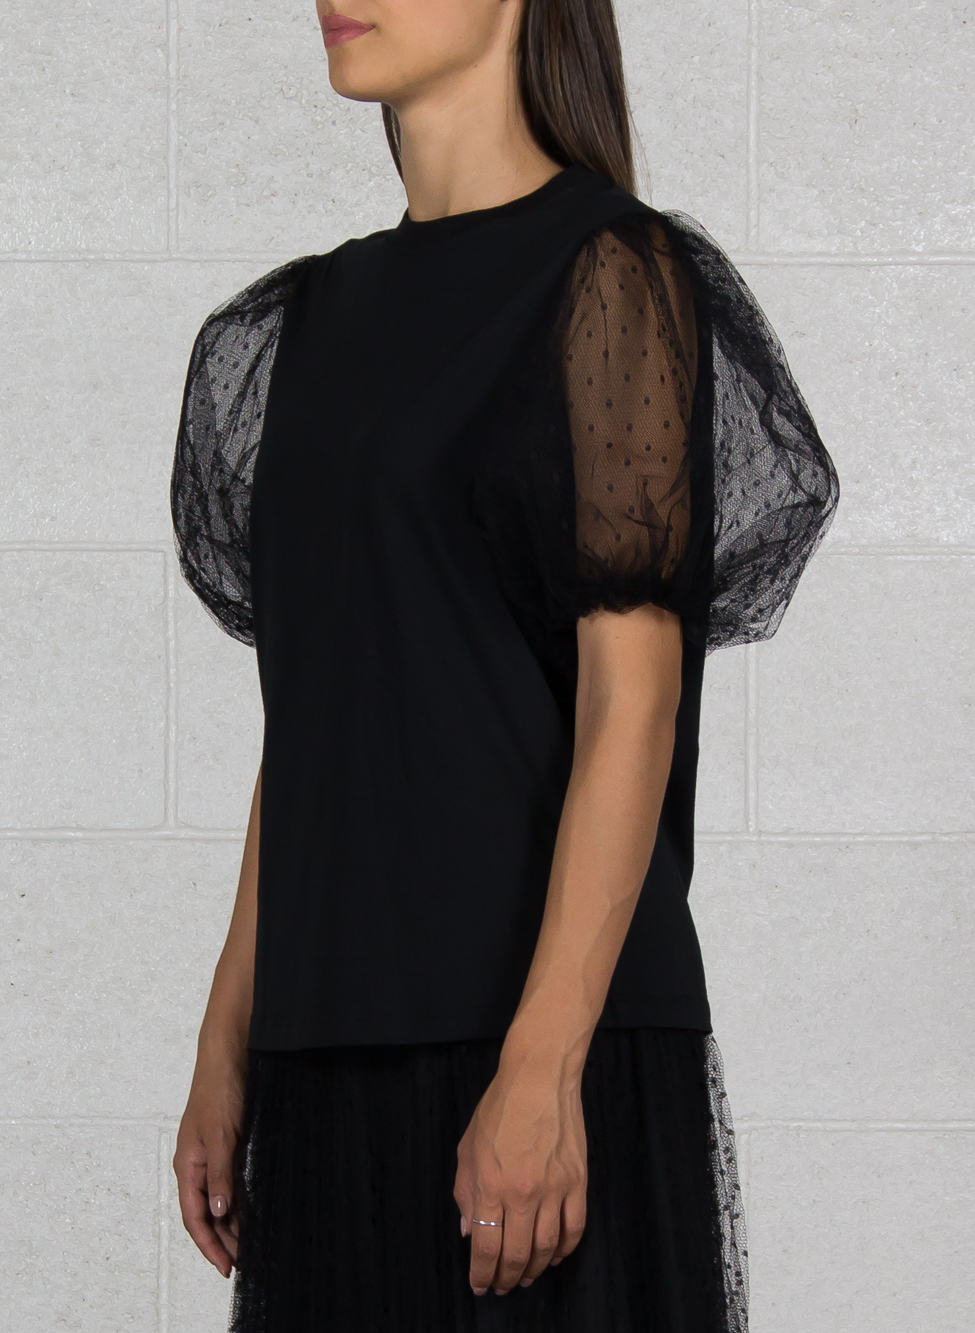 T-SHIRT CON MANICHE IN TULLE, 0NONERO, small